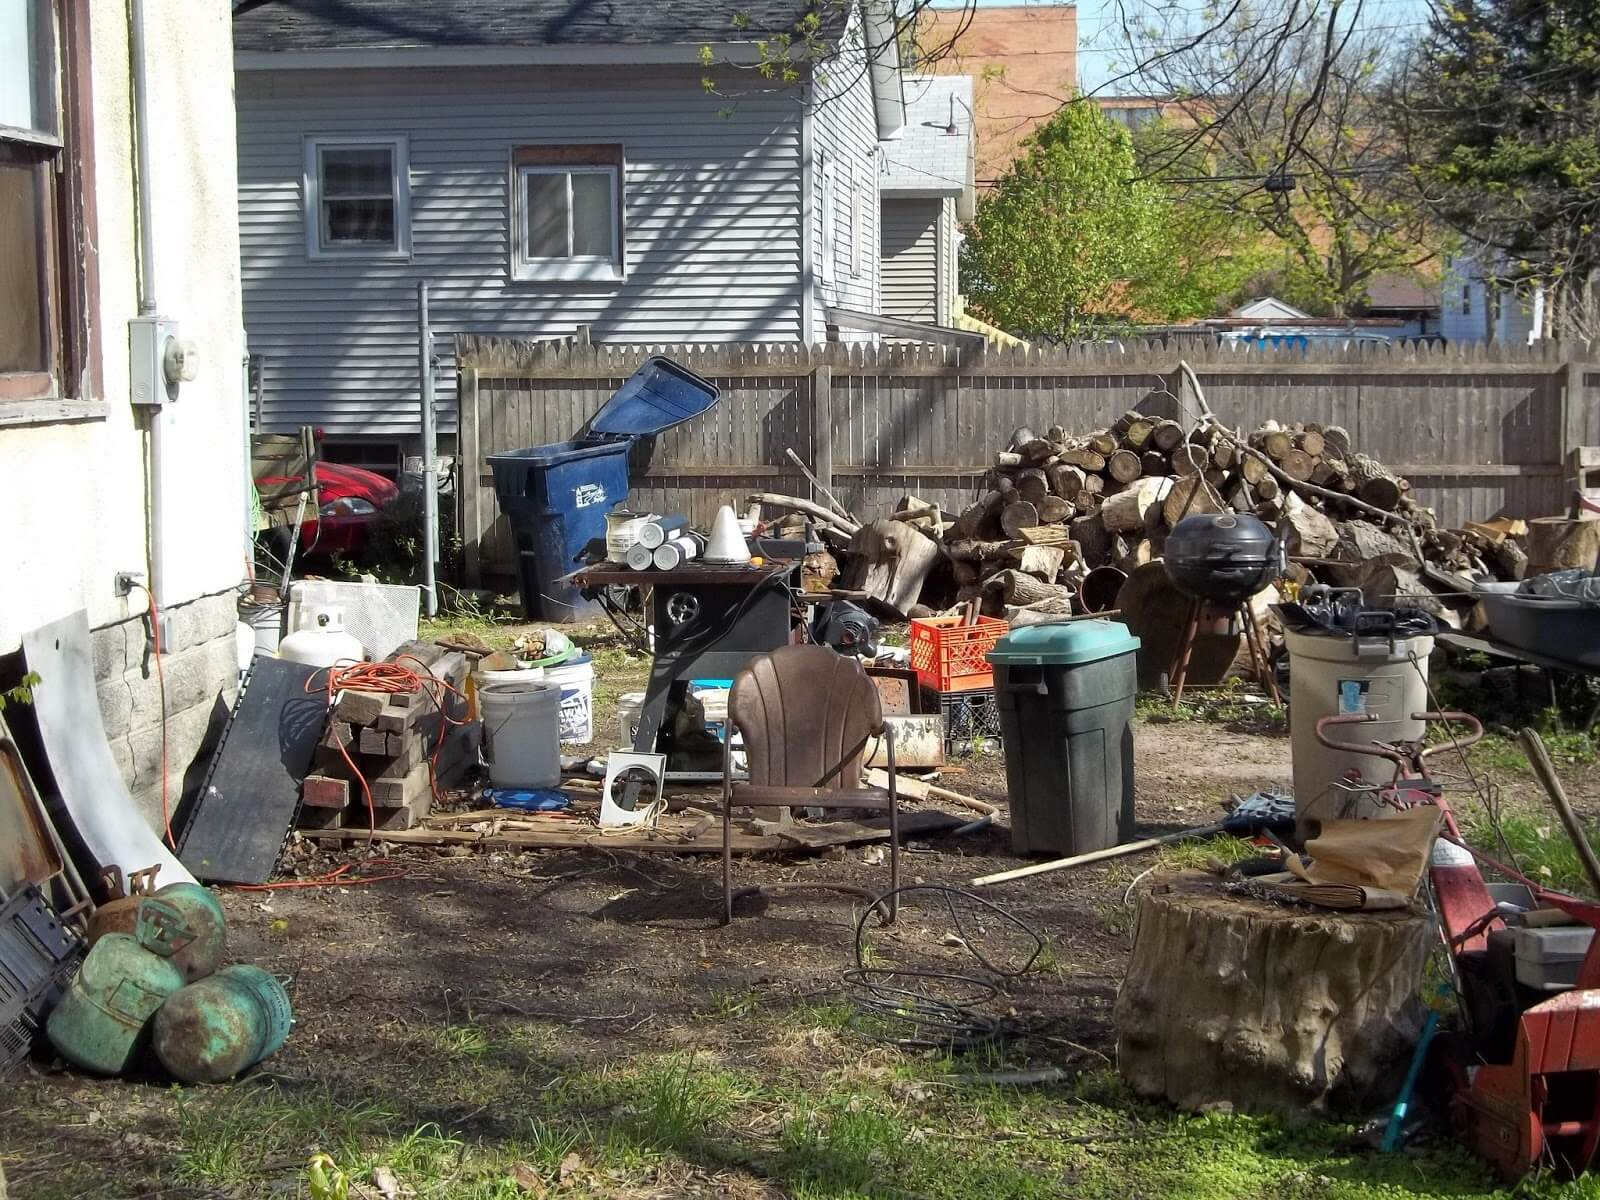 Residential Junk Removal-Scottsdale Dumpster Rental & Junk Removal Services-We Offer Residential and Commercial Dumpster Removal Services, Portable Toilet Services, Dumpster Rentals, Bulk Trash, Demolition Removal, Junk Hauling, Rubbish Removal, Waste Containers, Debris Removal, 20 & 30 Yard Container Rentals, and much more!